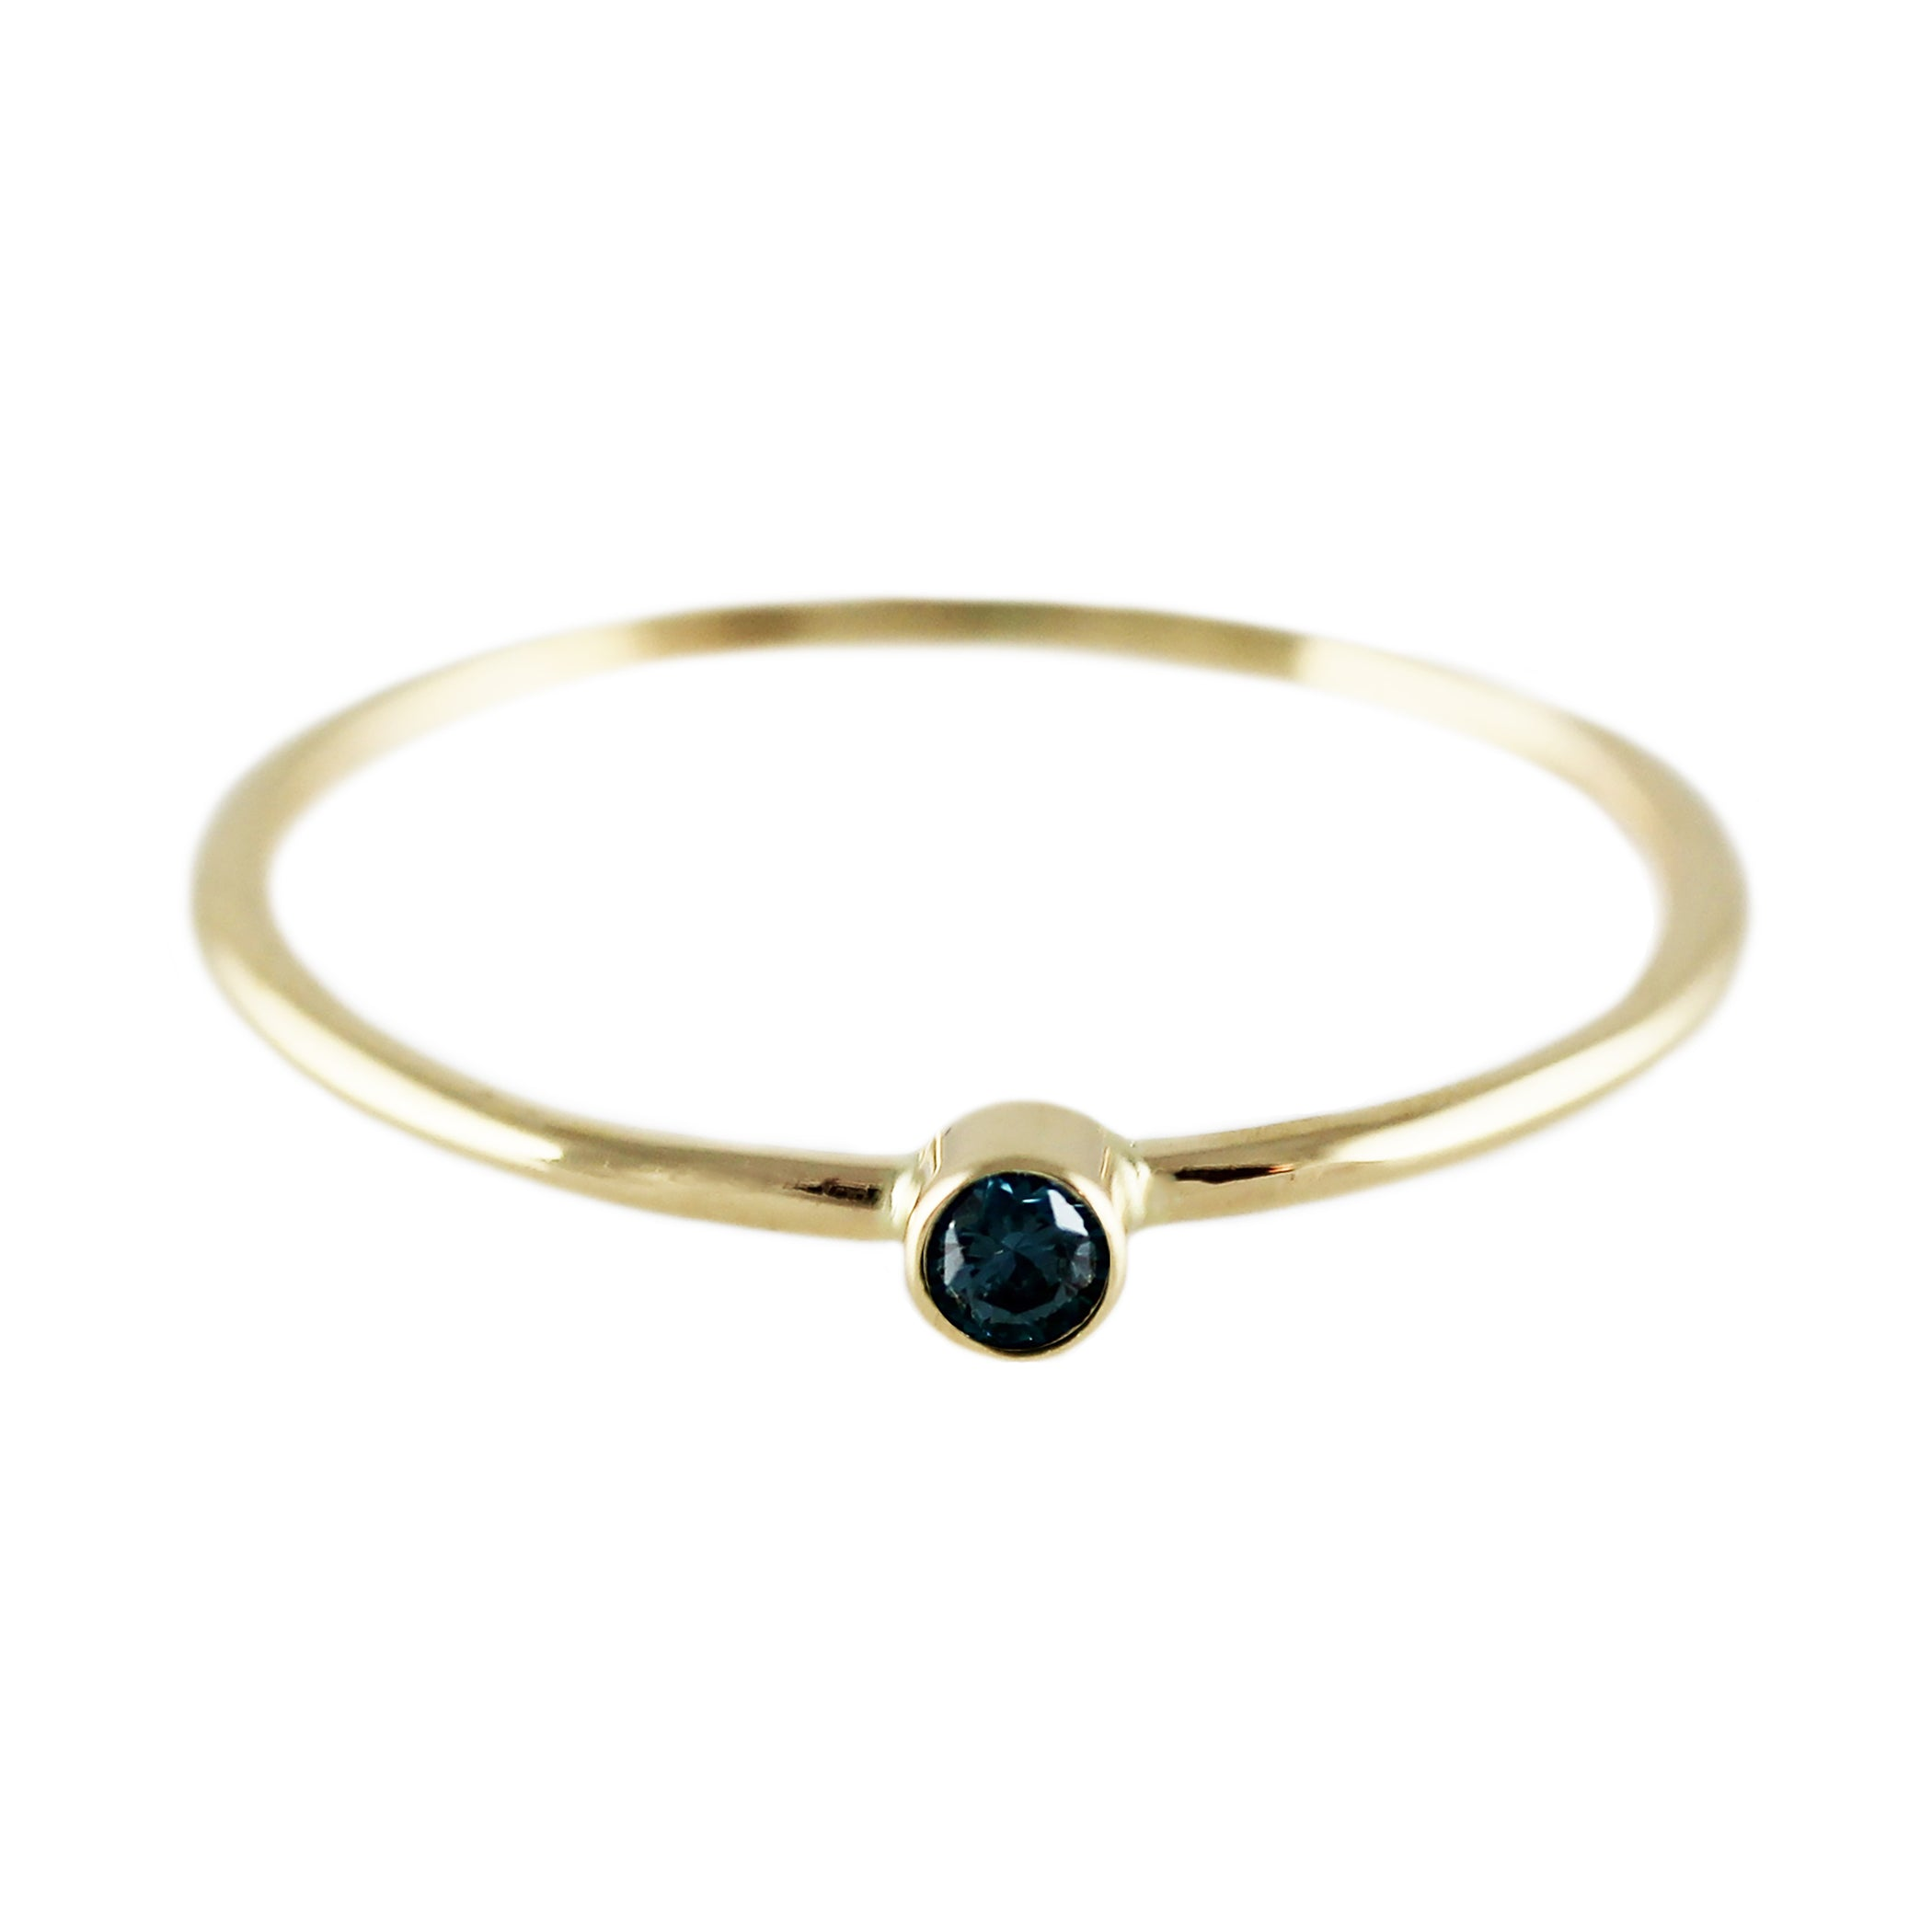 14K SINGLE BLUE DIAMOND RING